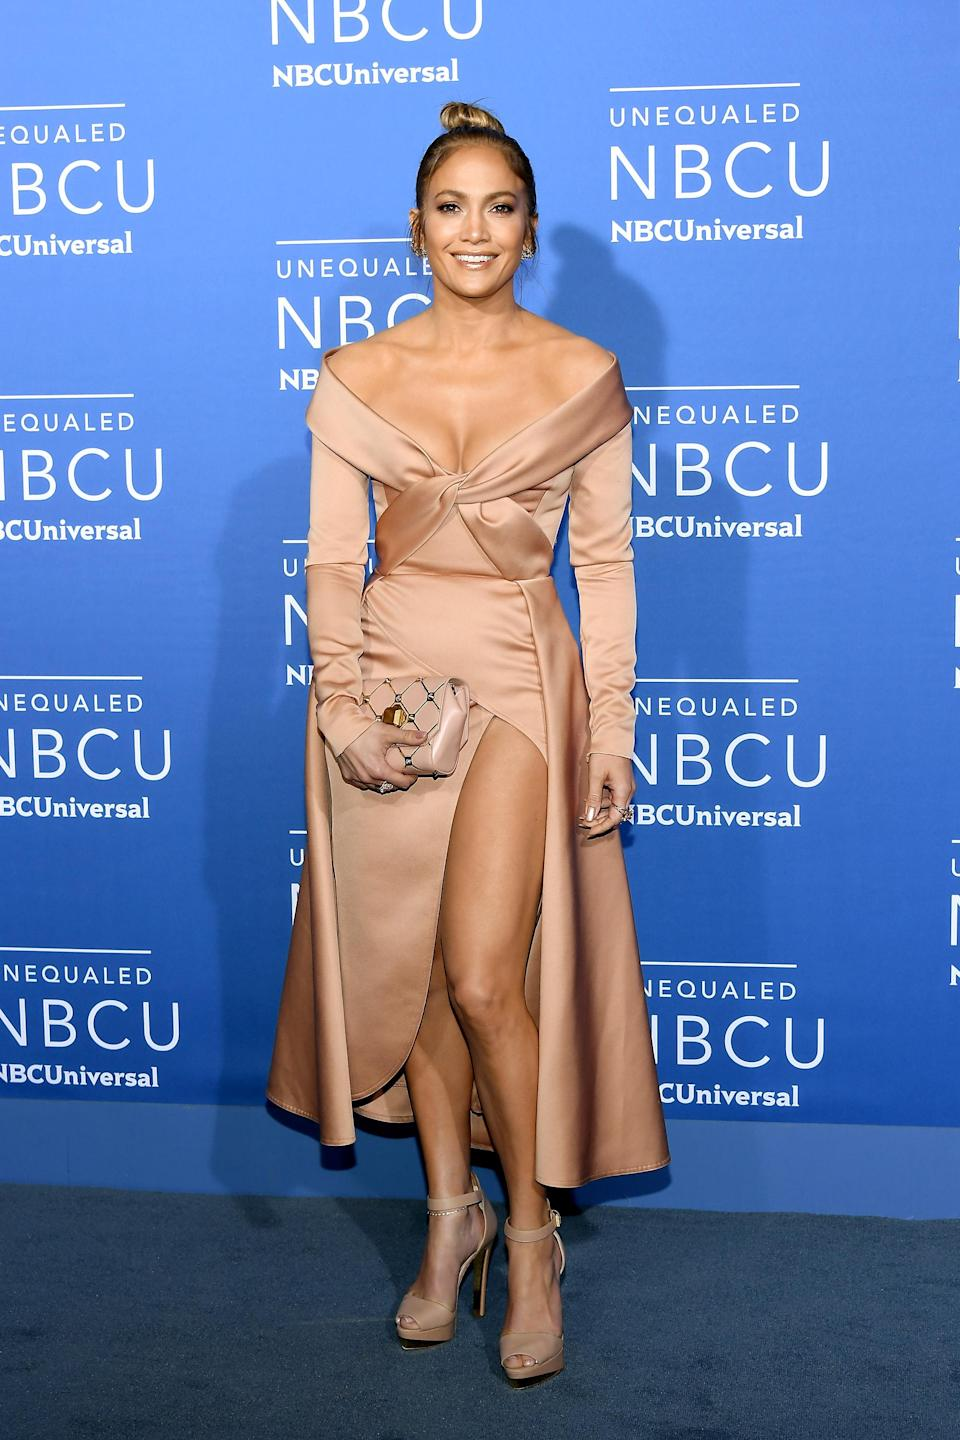 <p>A different look for J.Lo, this midi gown paid perfect homage to all of her hard work over the years, giving a glimpse of her athletic physique. [Photo: Getty] </p>